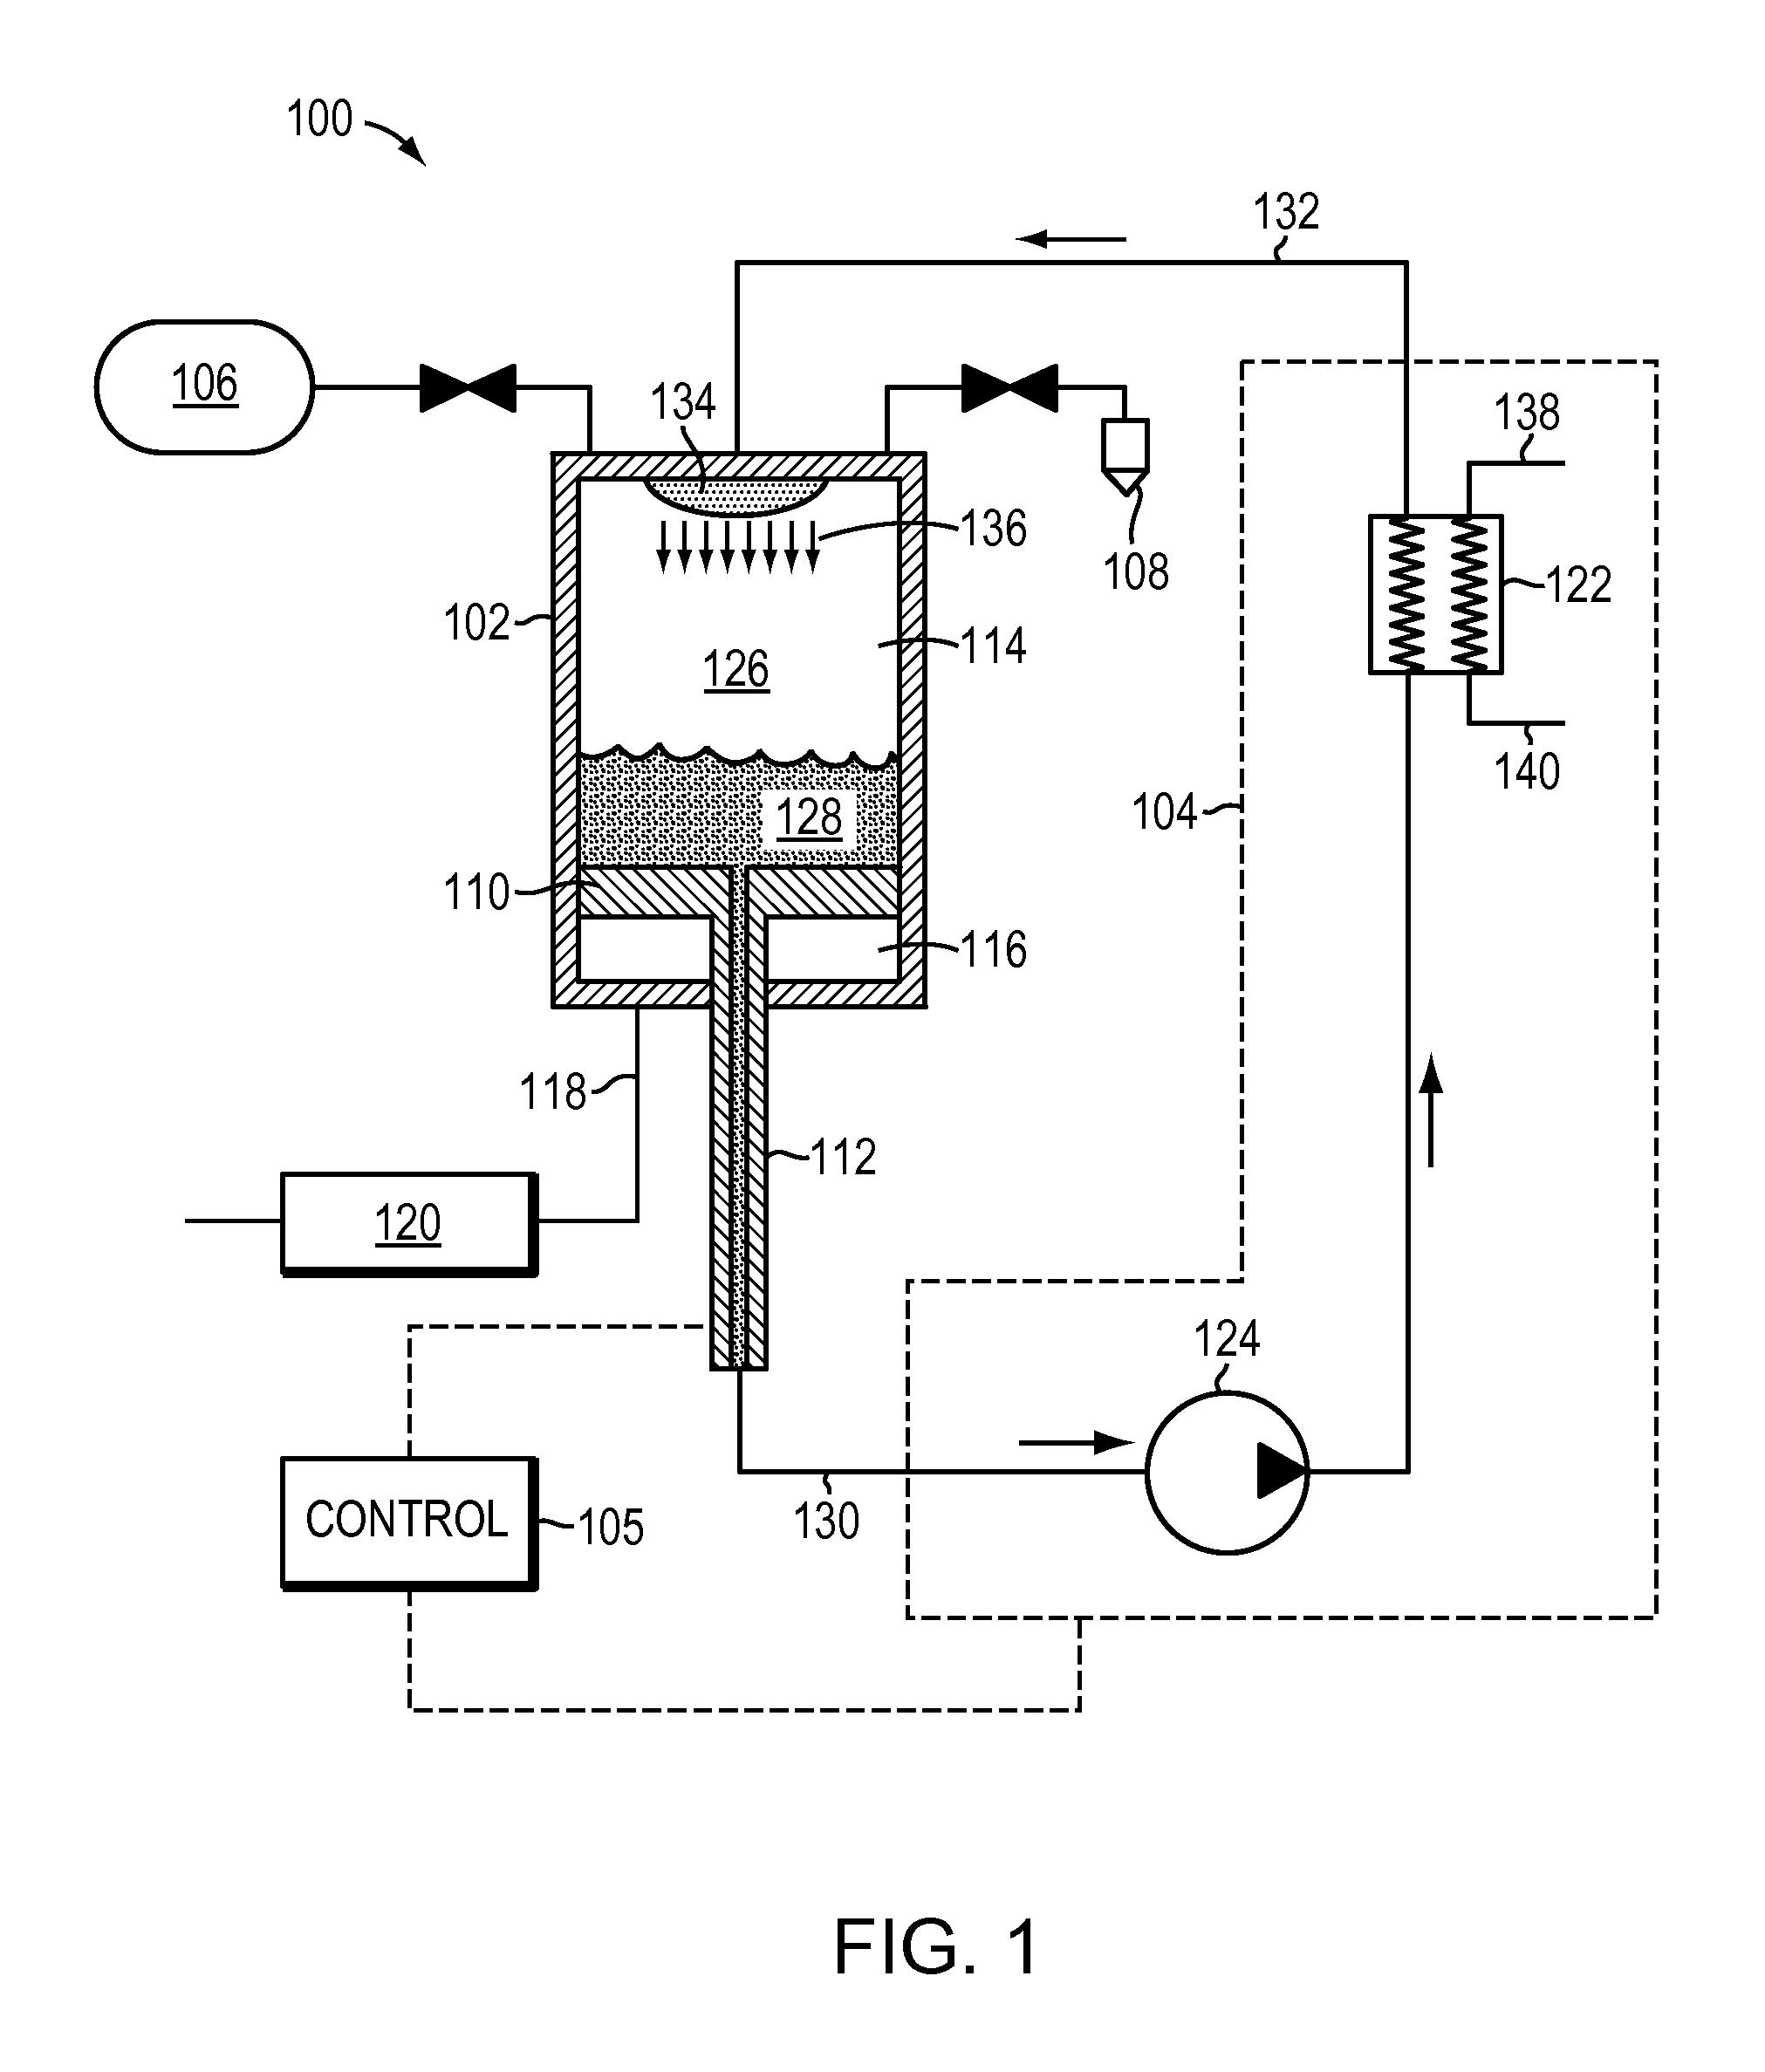 Patent Us 8104274 B2 And Apparatus By The Harnessing Of Centrifugal Force Diagram Image Images